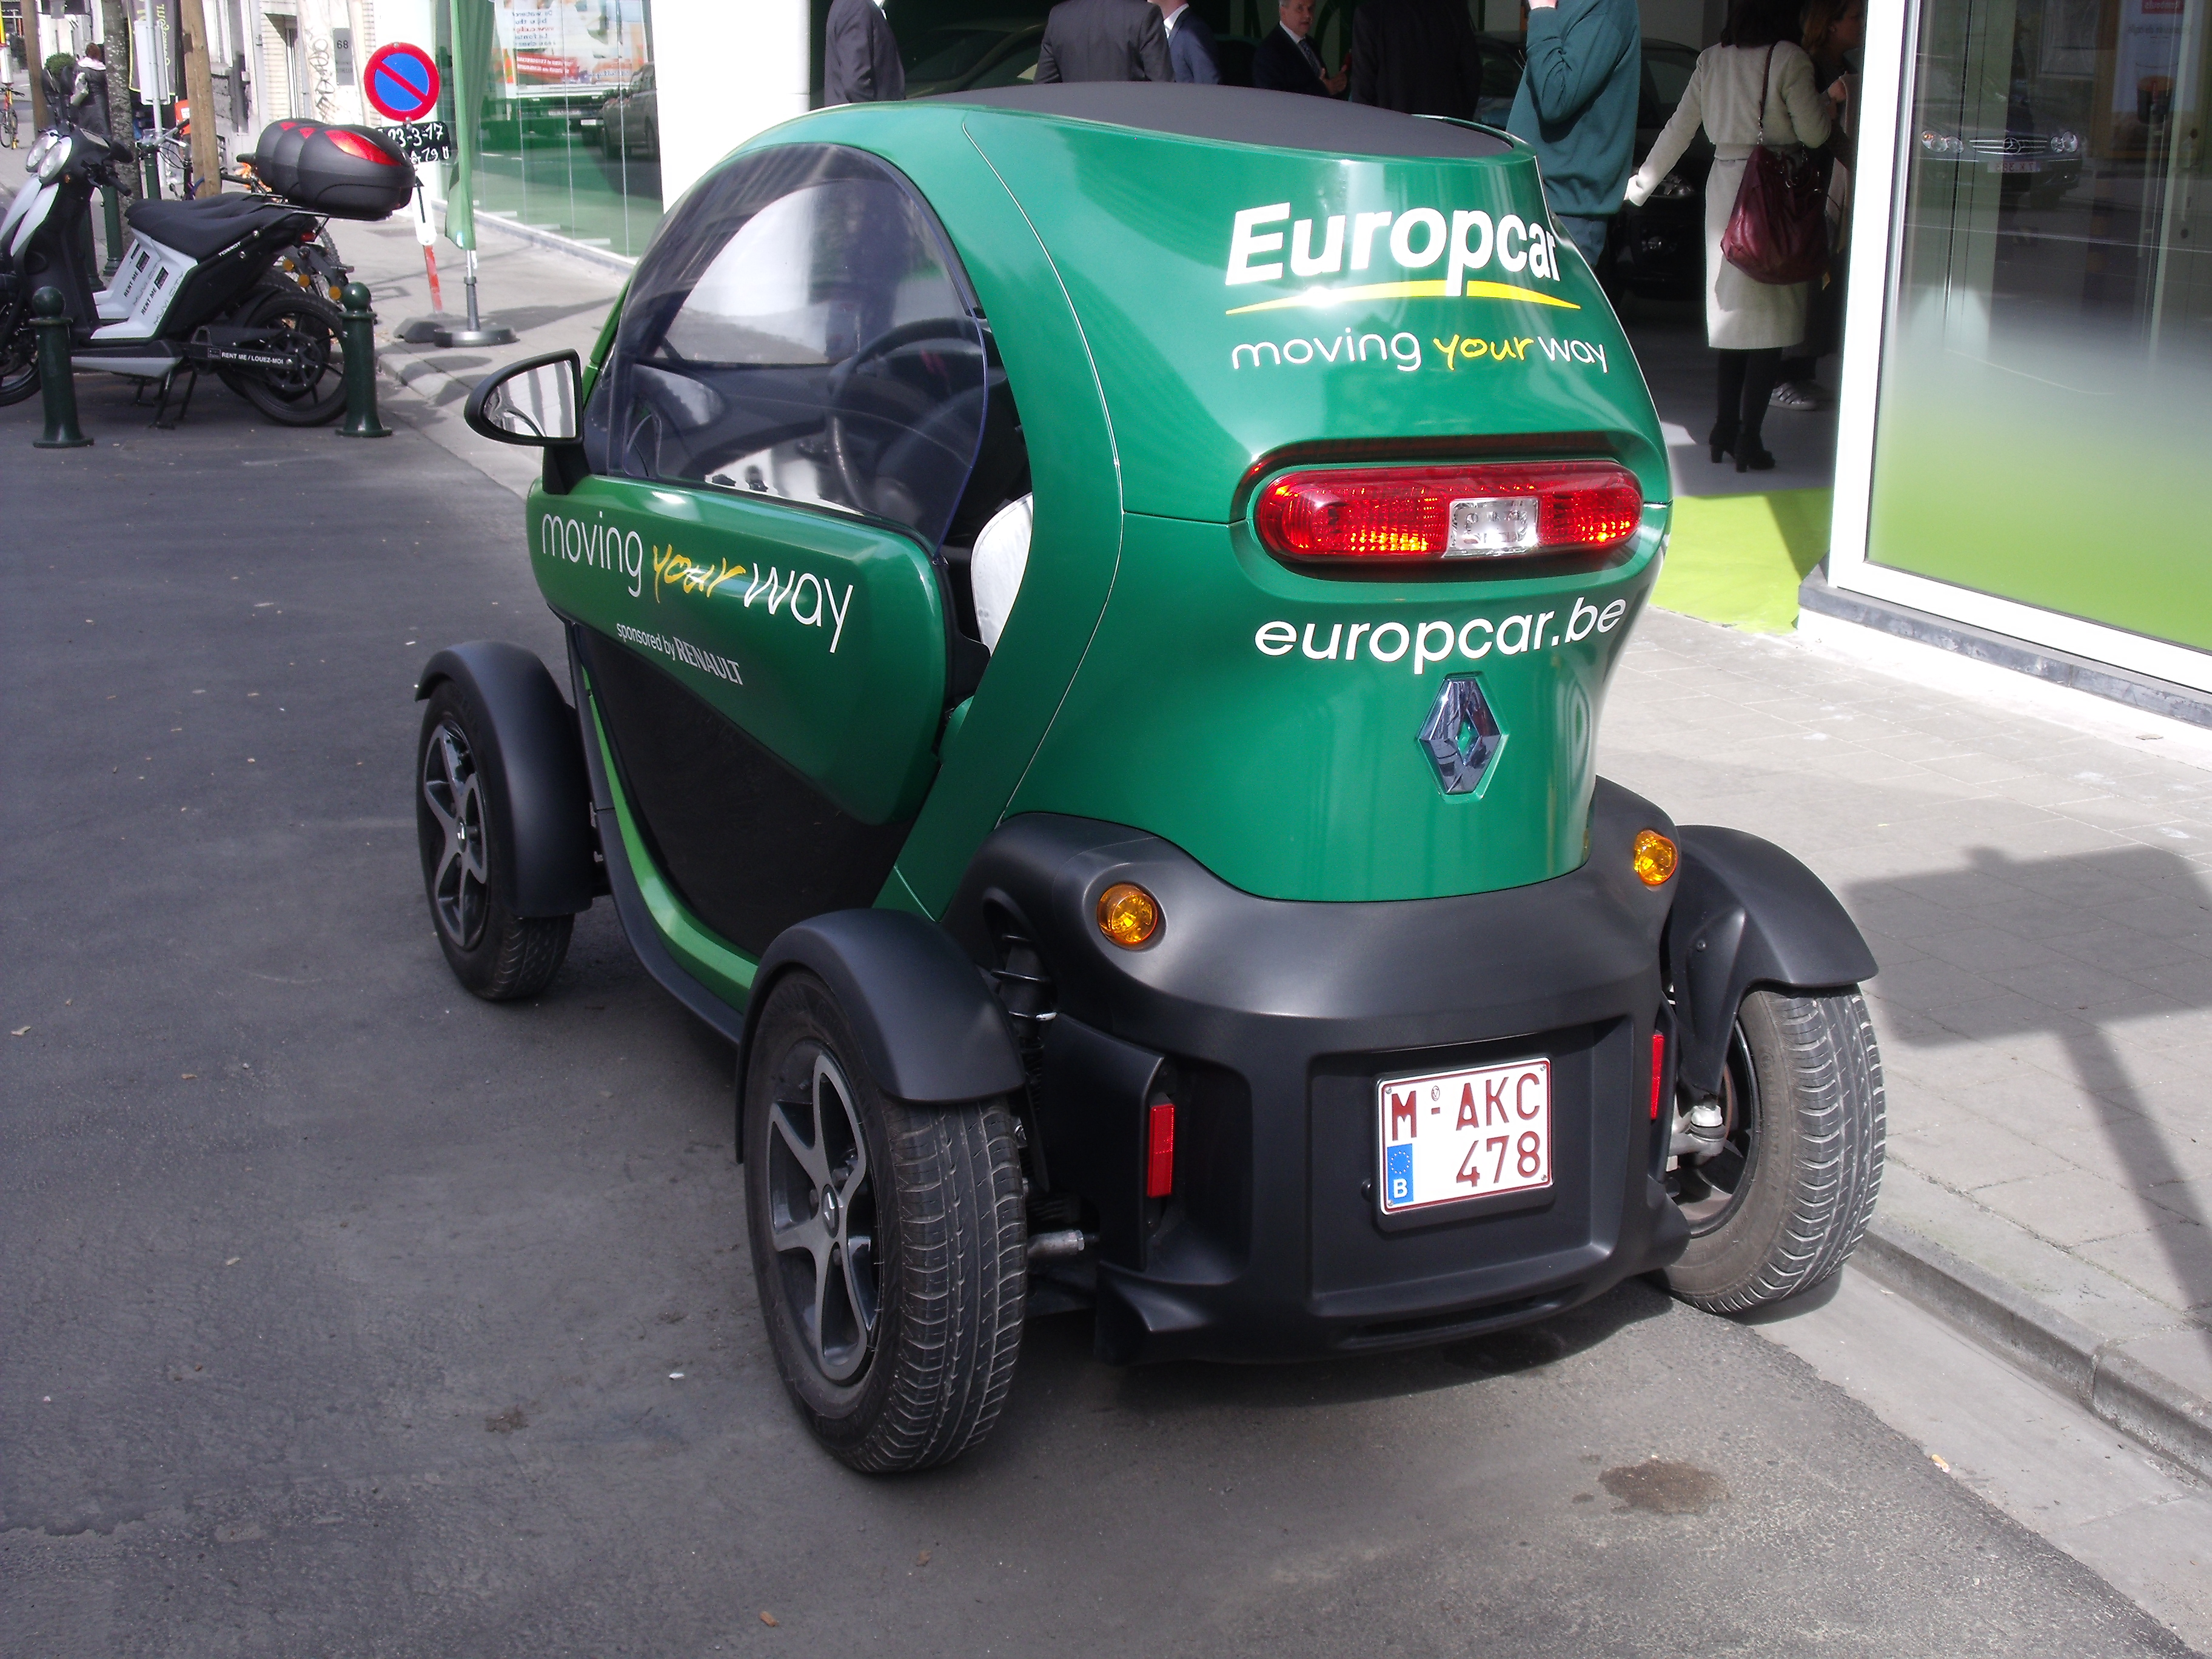 Europcar Dry Cleaning Where Possible Fleet Europe